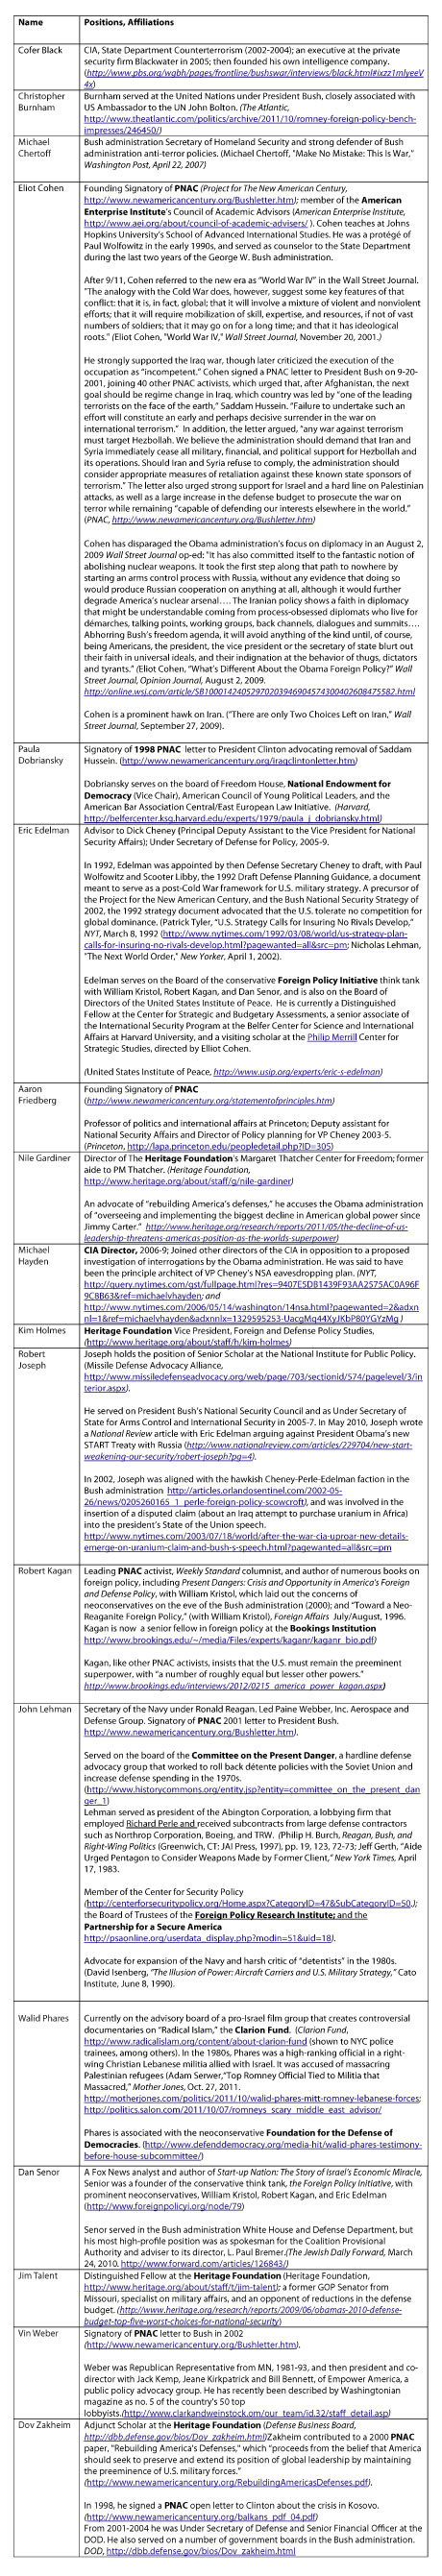 Table 1. Romney Foreign Policy Advisers: Positions and Affiliations (think tanks in bold)